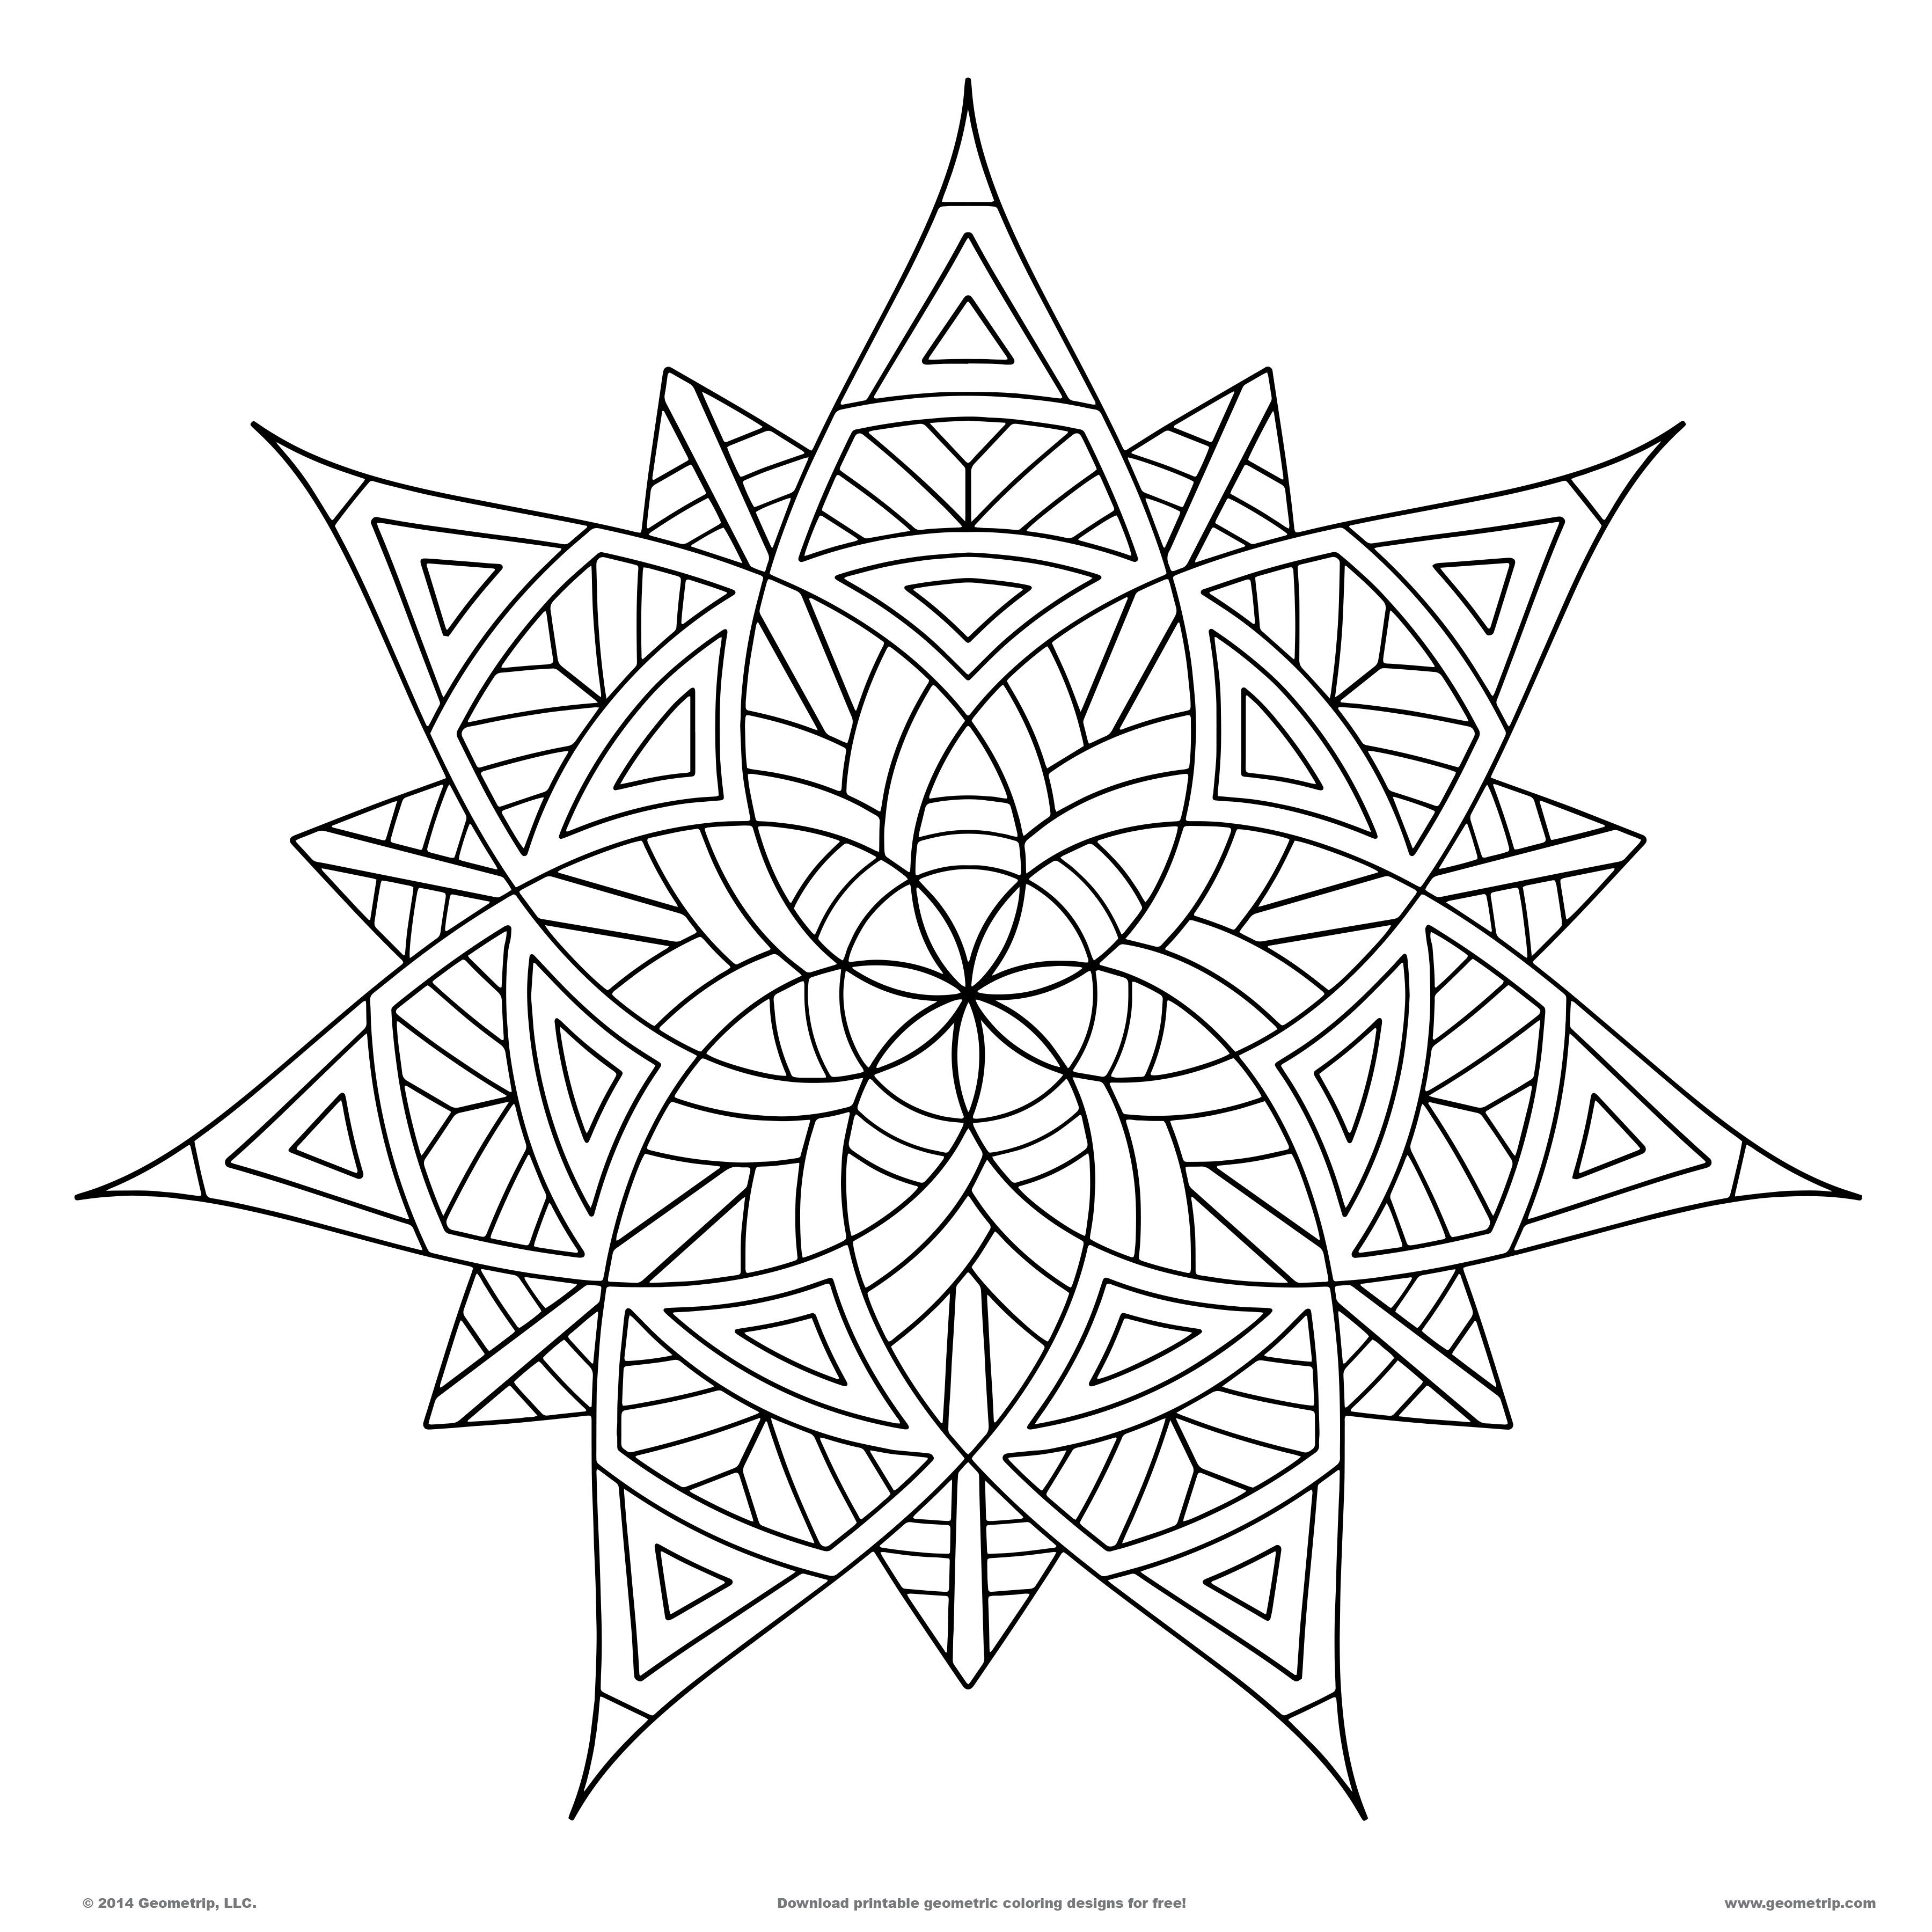 Geometrip.com features high quality geometric coloring designs that ...